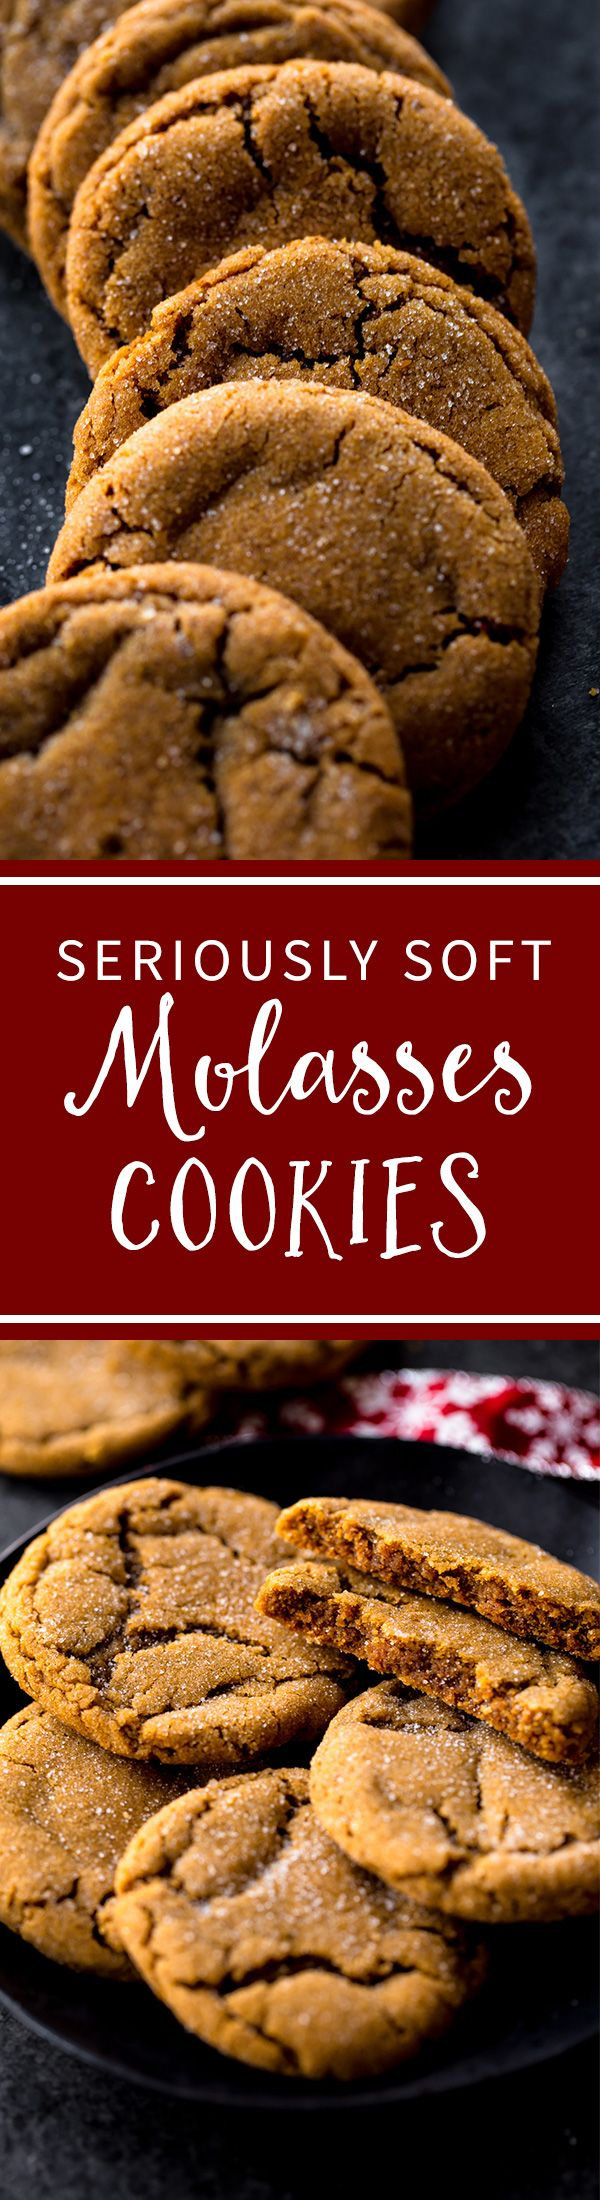 Seriously soft and chewy molasses cookies will be your favorite Christmas cookie! So much delicious flavor in one easy cookie recipe. Recipe on sallysbakingaddiction.com